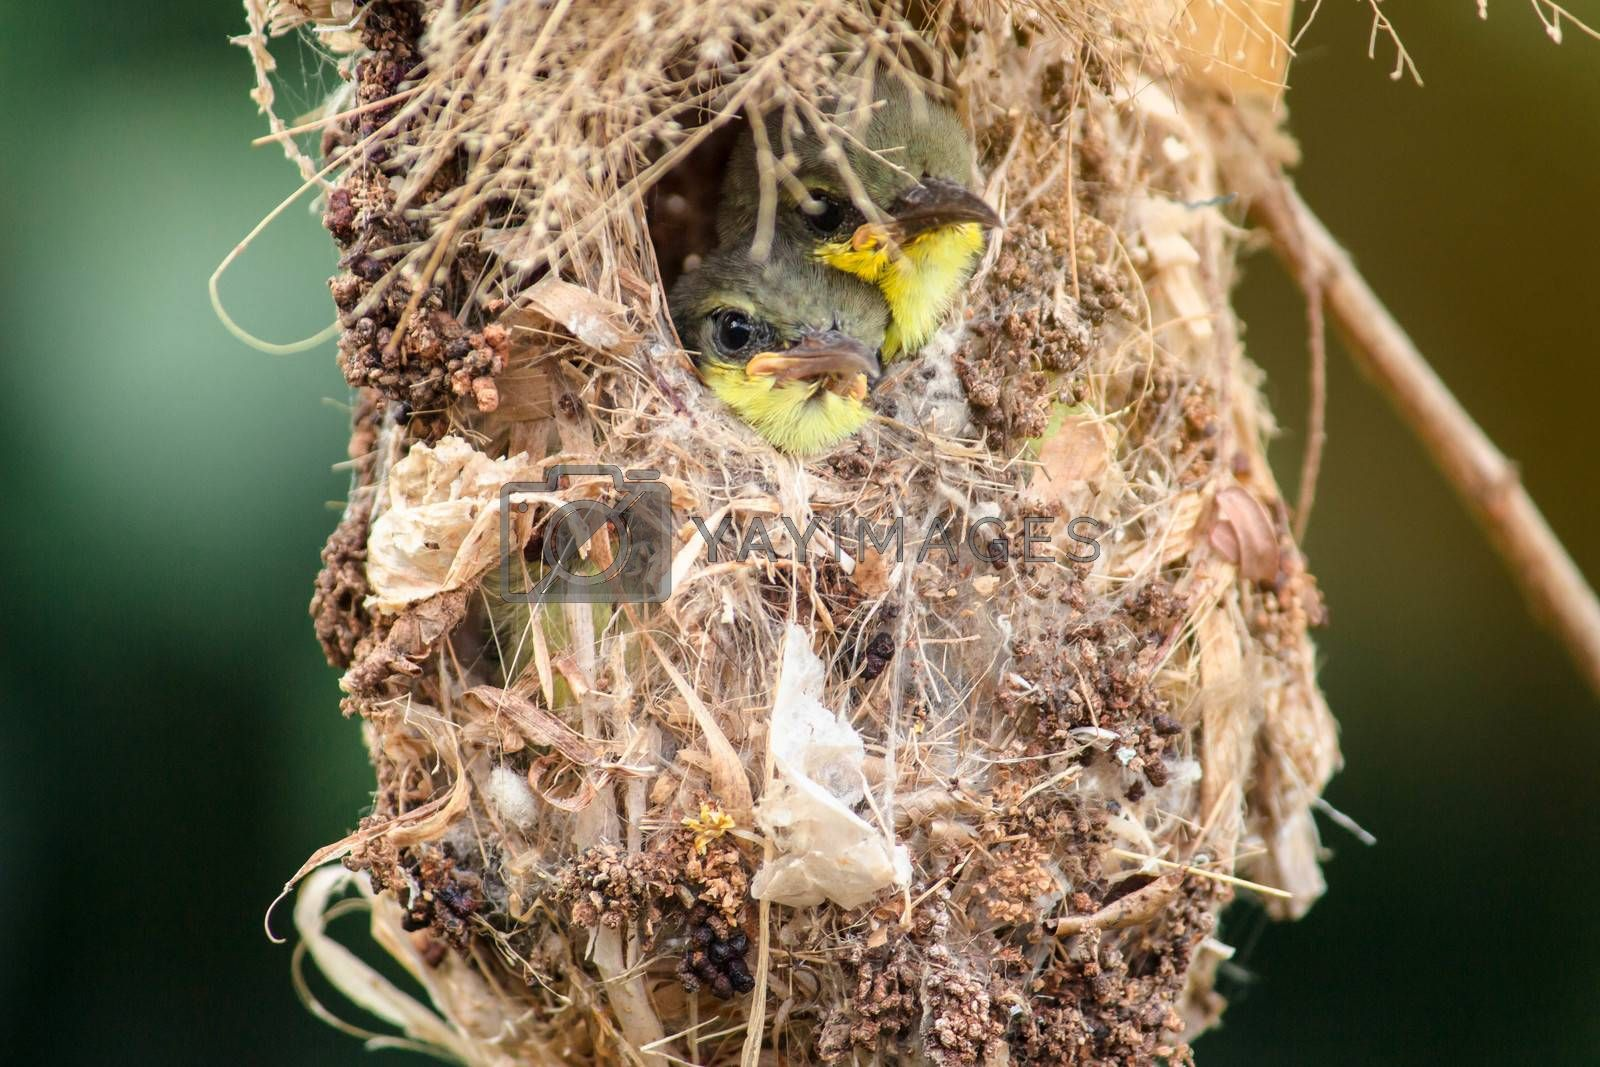 Close up of Olive-backed Sunbird family; baby bird in a bird nest hanging on tree branch waiting food from mother. Common birds in Asia, it reuse scrap for nesting materials. Selective focus. by TEERASAK